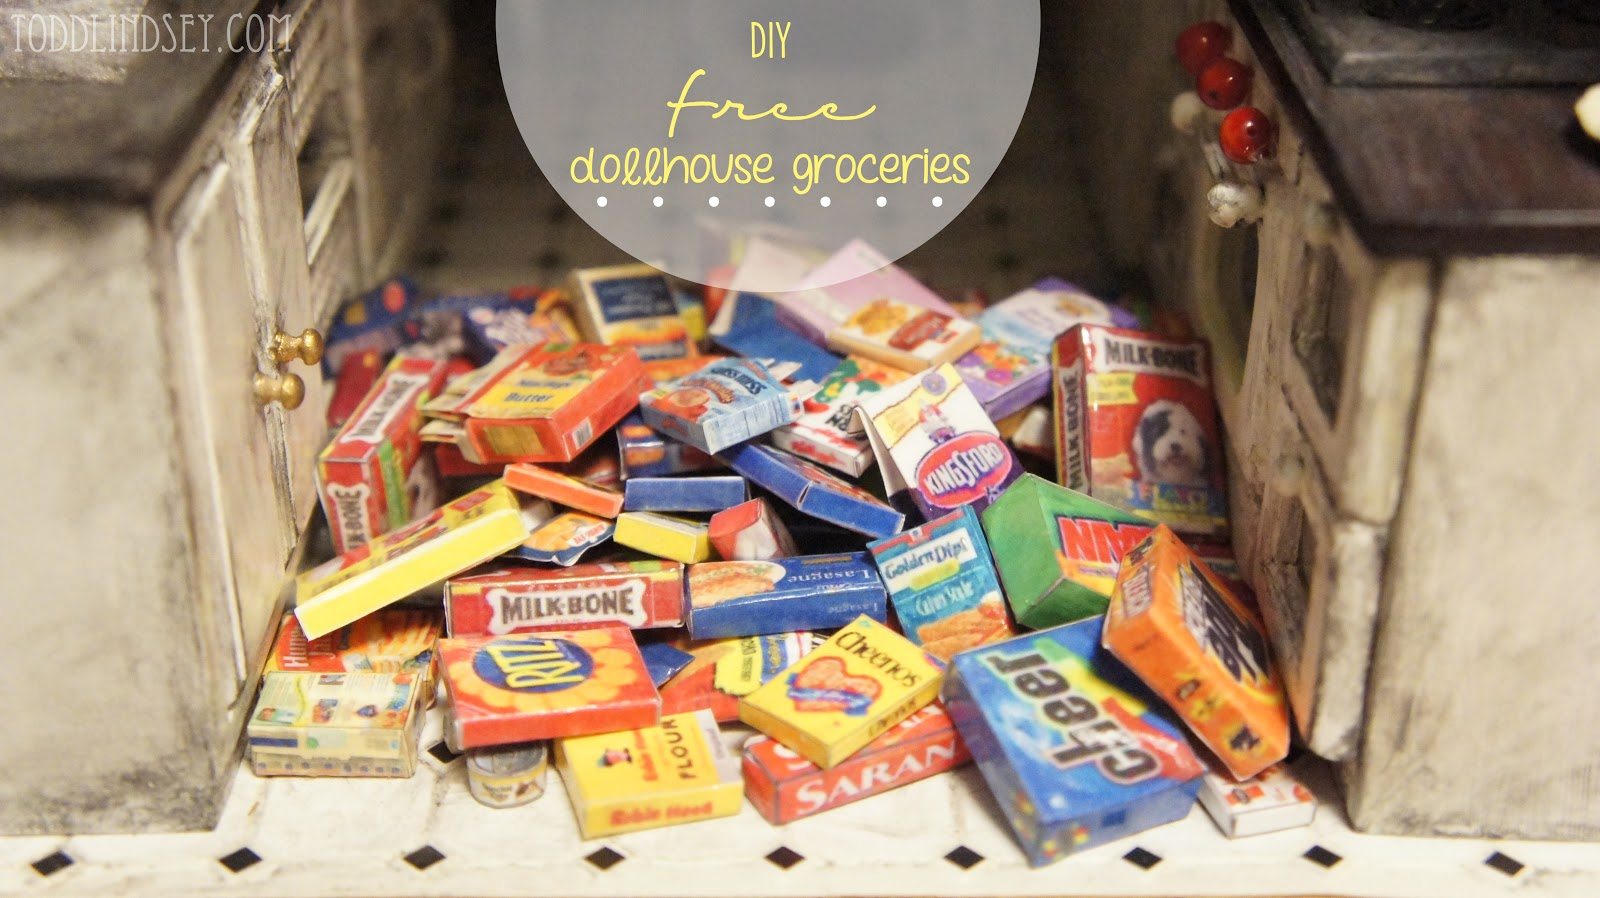 Domer Home Diy Free Dollhouse Groceries